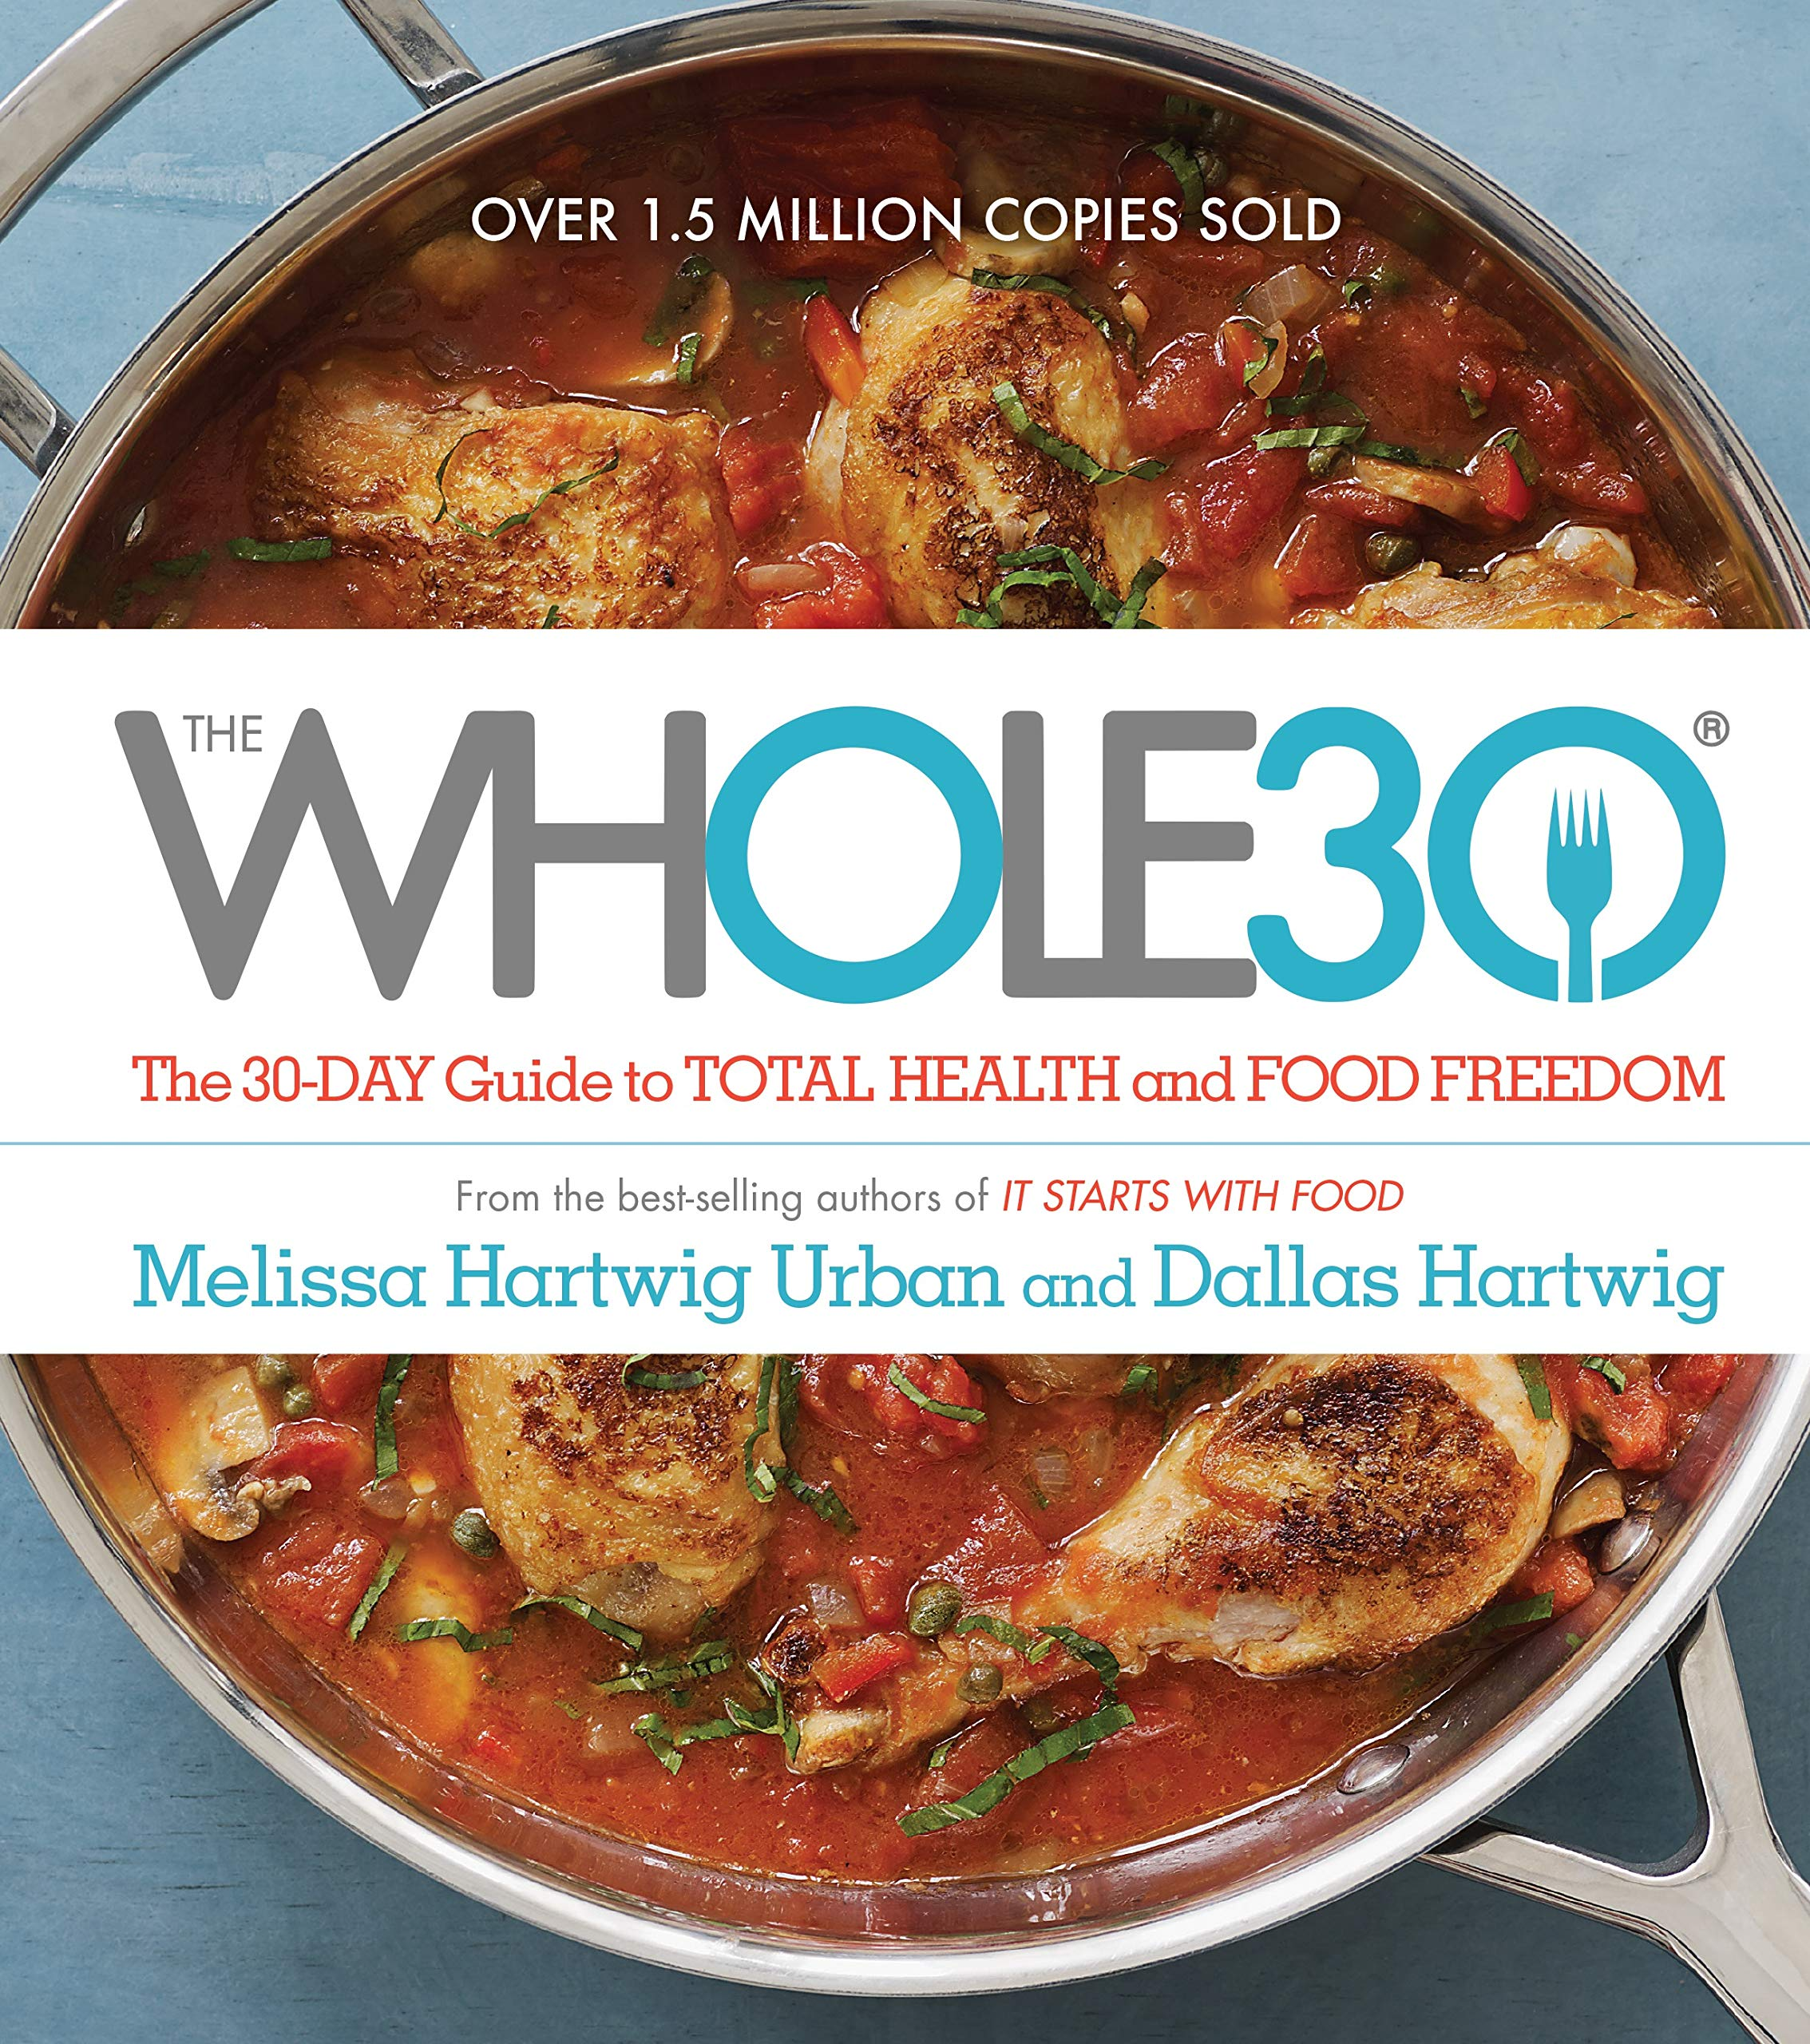 The Whole30: The 30-Day Guide to Total Health and Food Freedom by Houghton Mifflin Harcourt